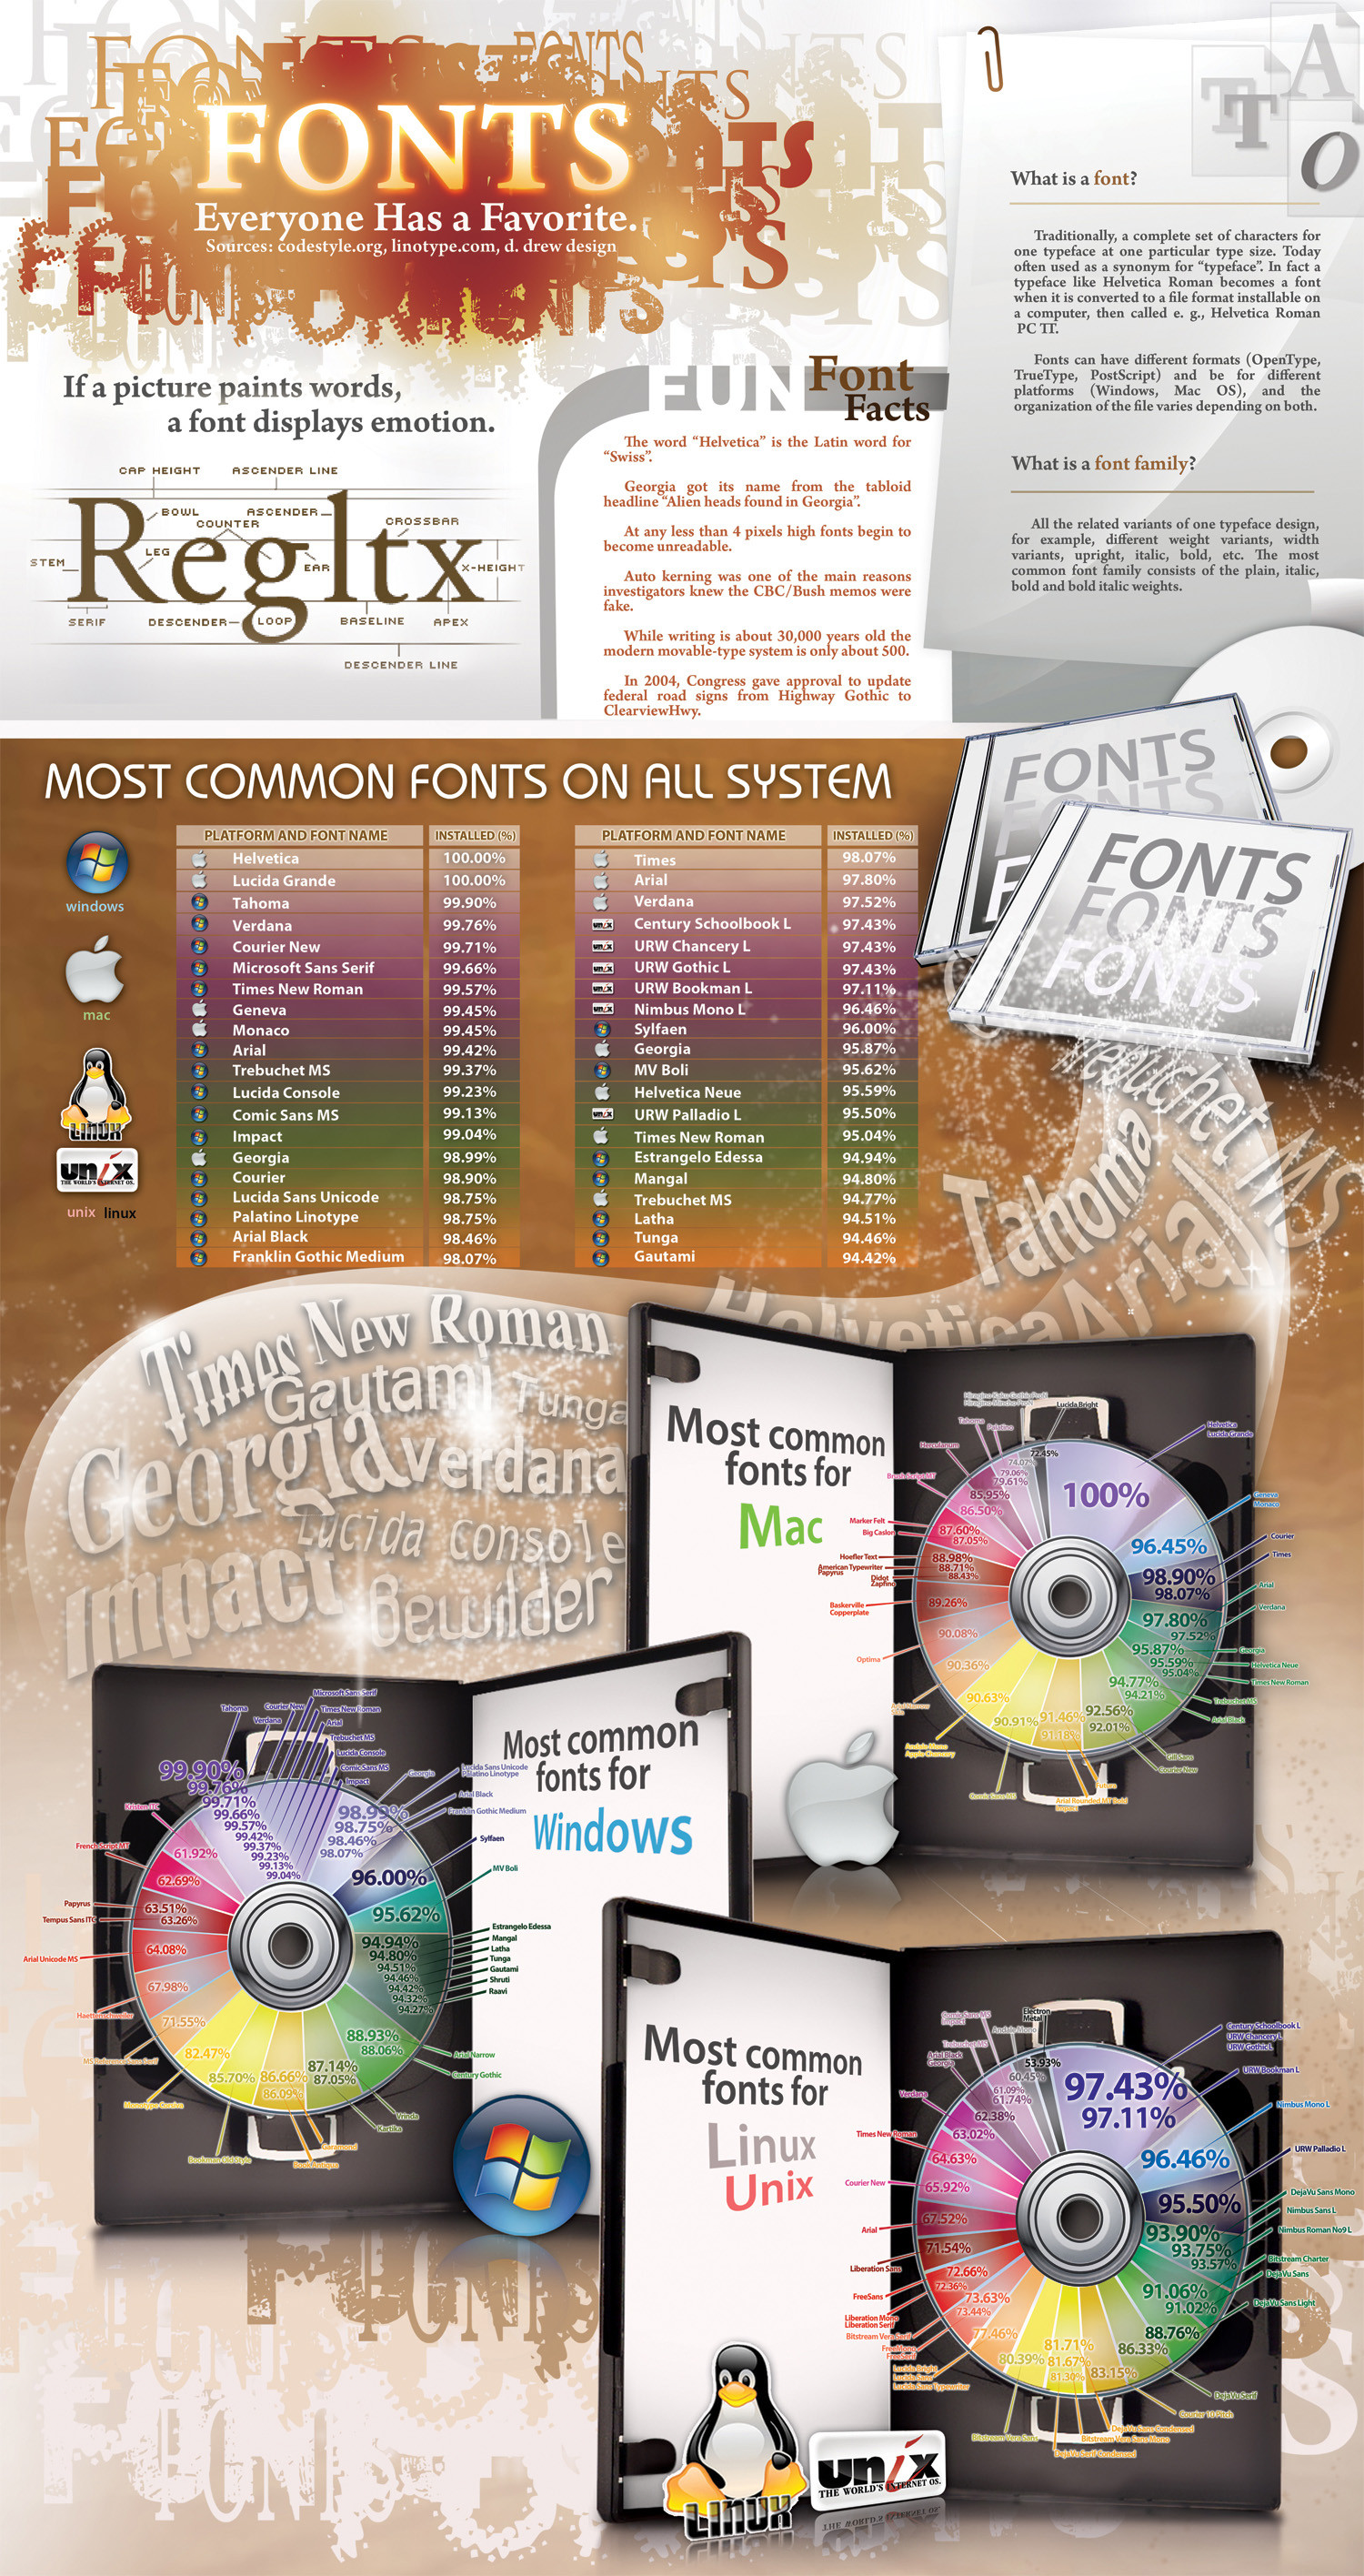 Fonts: What Are YOU Lookin At?  Infographic